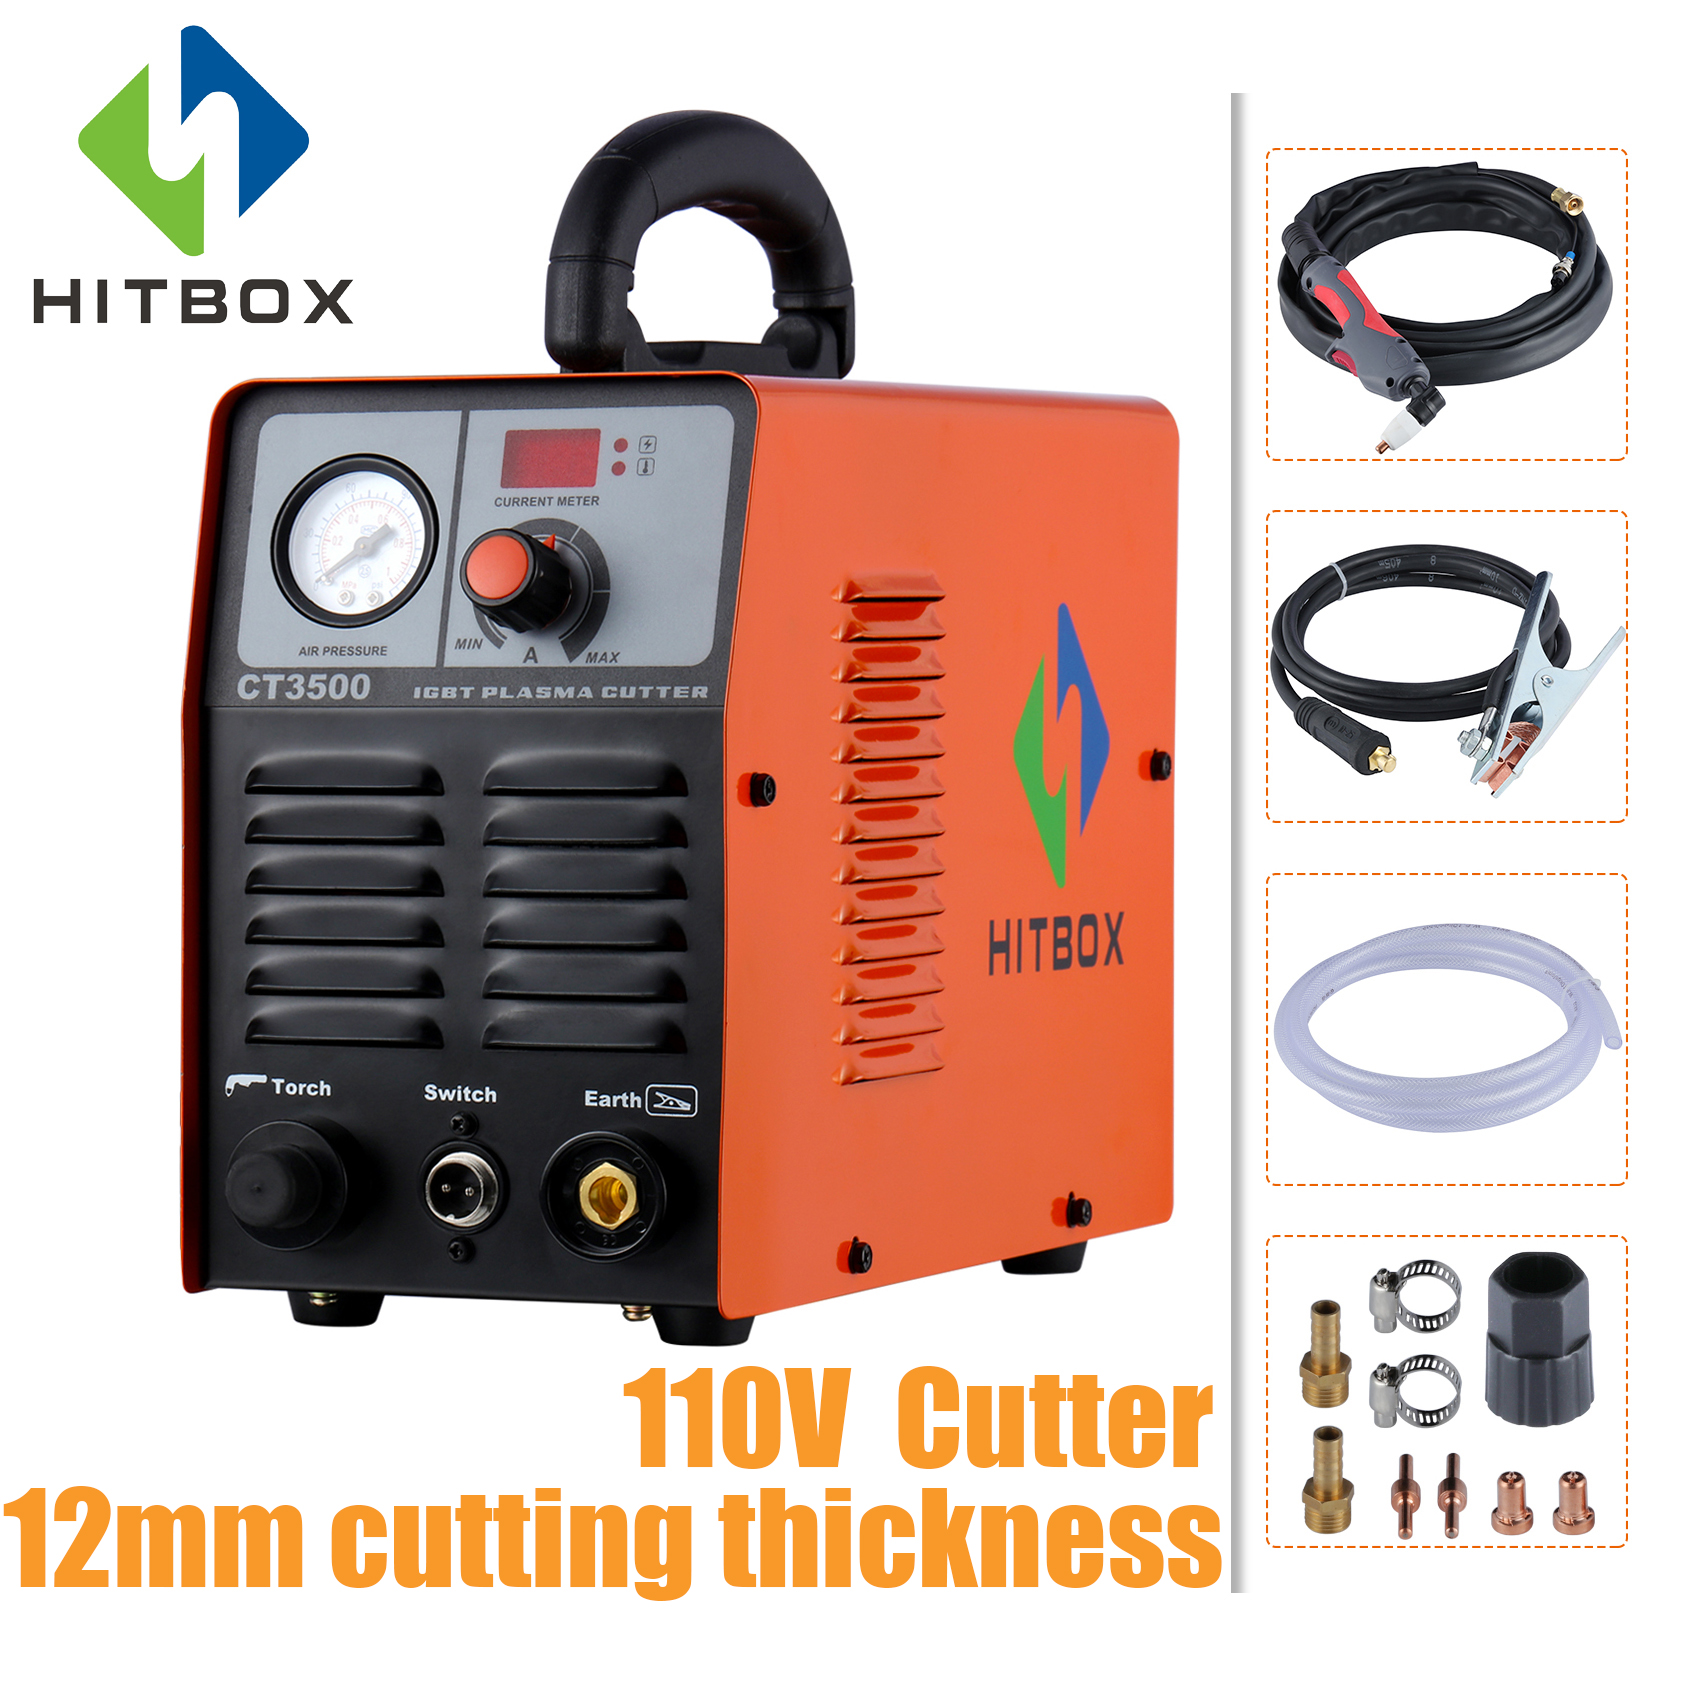 HITBOX Plasma Cutter 110V Cutting Machine Cut3500 Single Phase 110V IGBT Inverter Technology 10mm Maximum Cutting